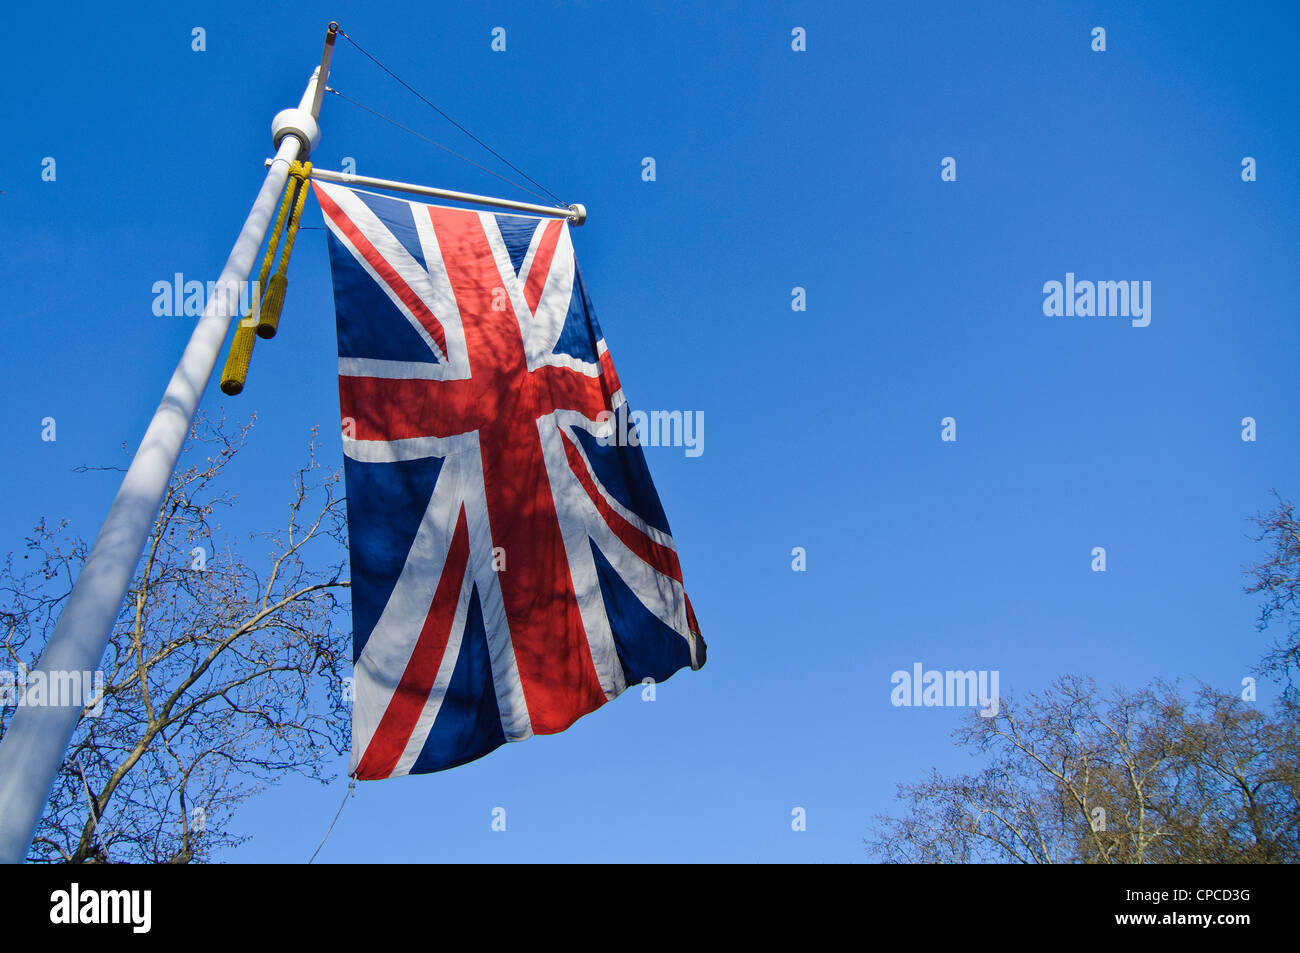 Union Jack flag against a blue sky in spring in London - Stock Image